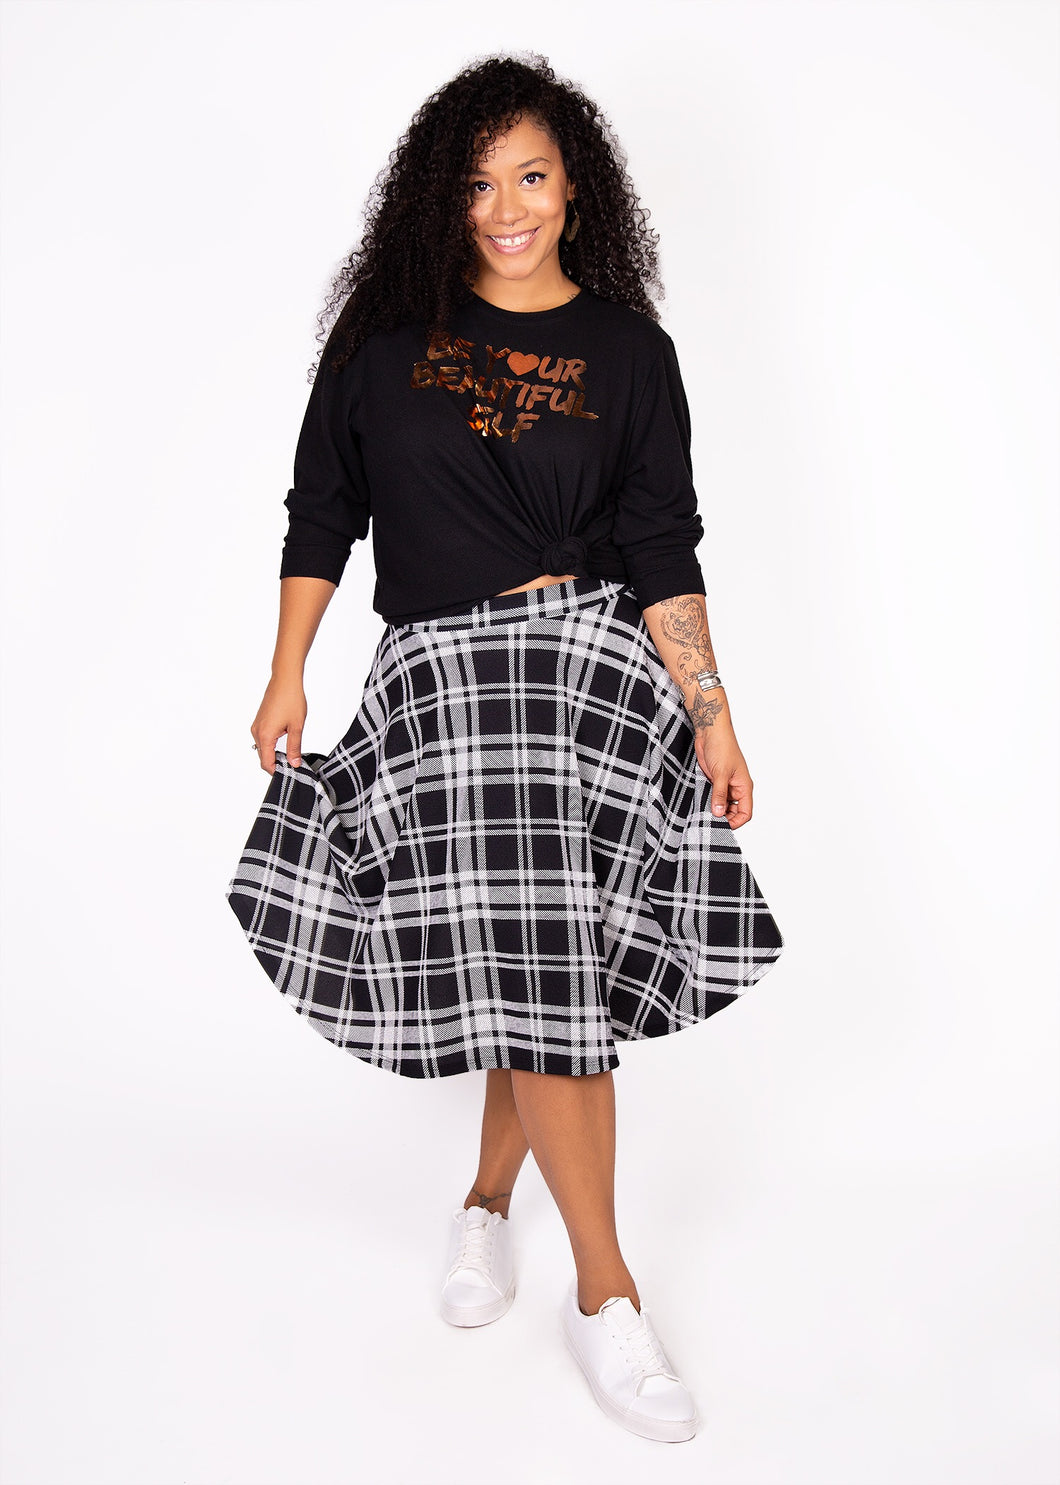 Bloom Skirt - Black and White Plaid  - XL